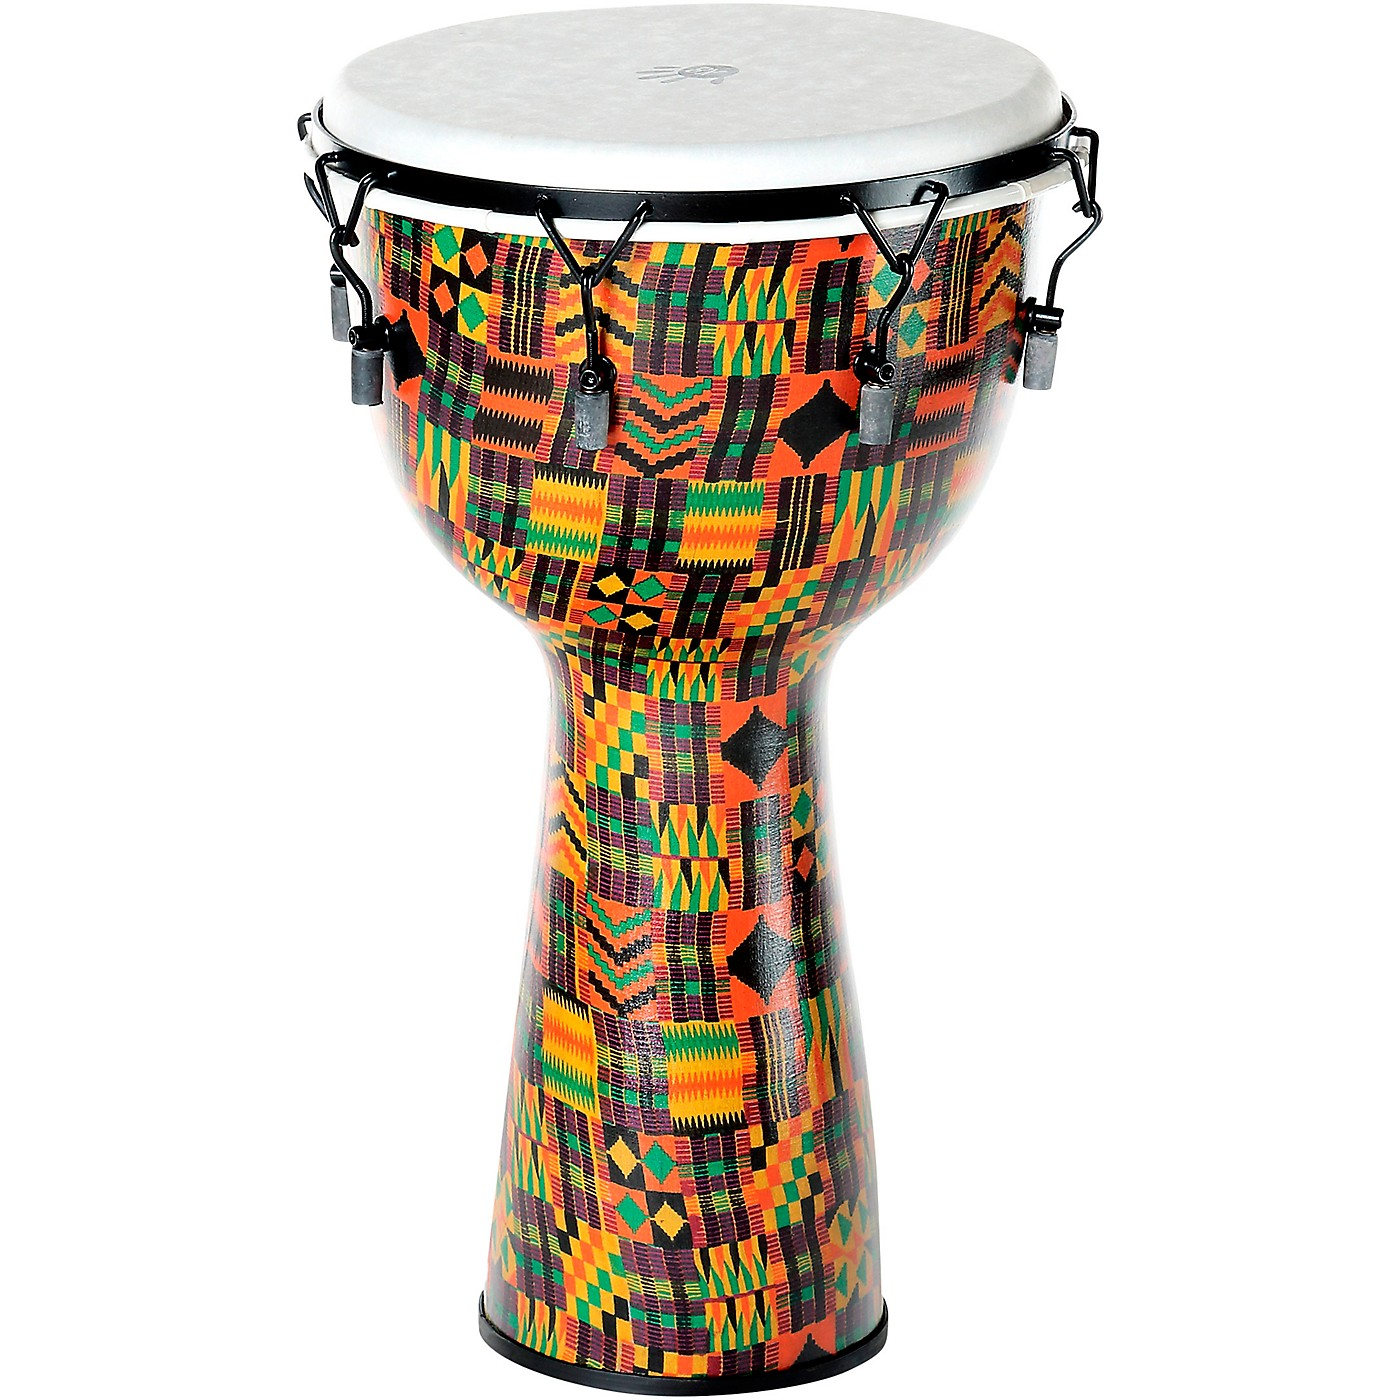 X8 Drums Kente Cloth Key-Tuned Djembe with Synthetic Head thumbnail